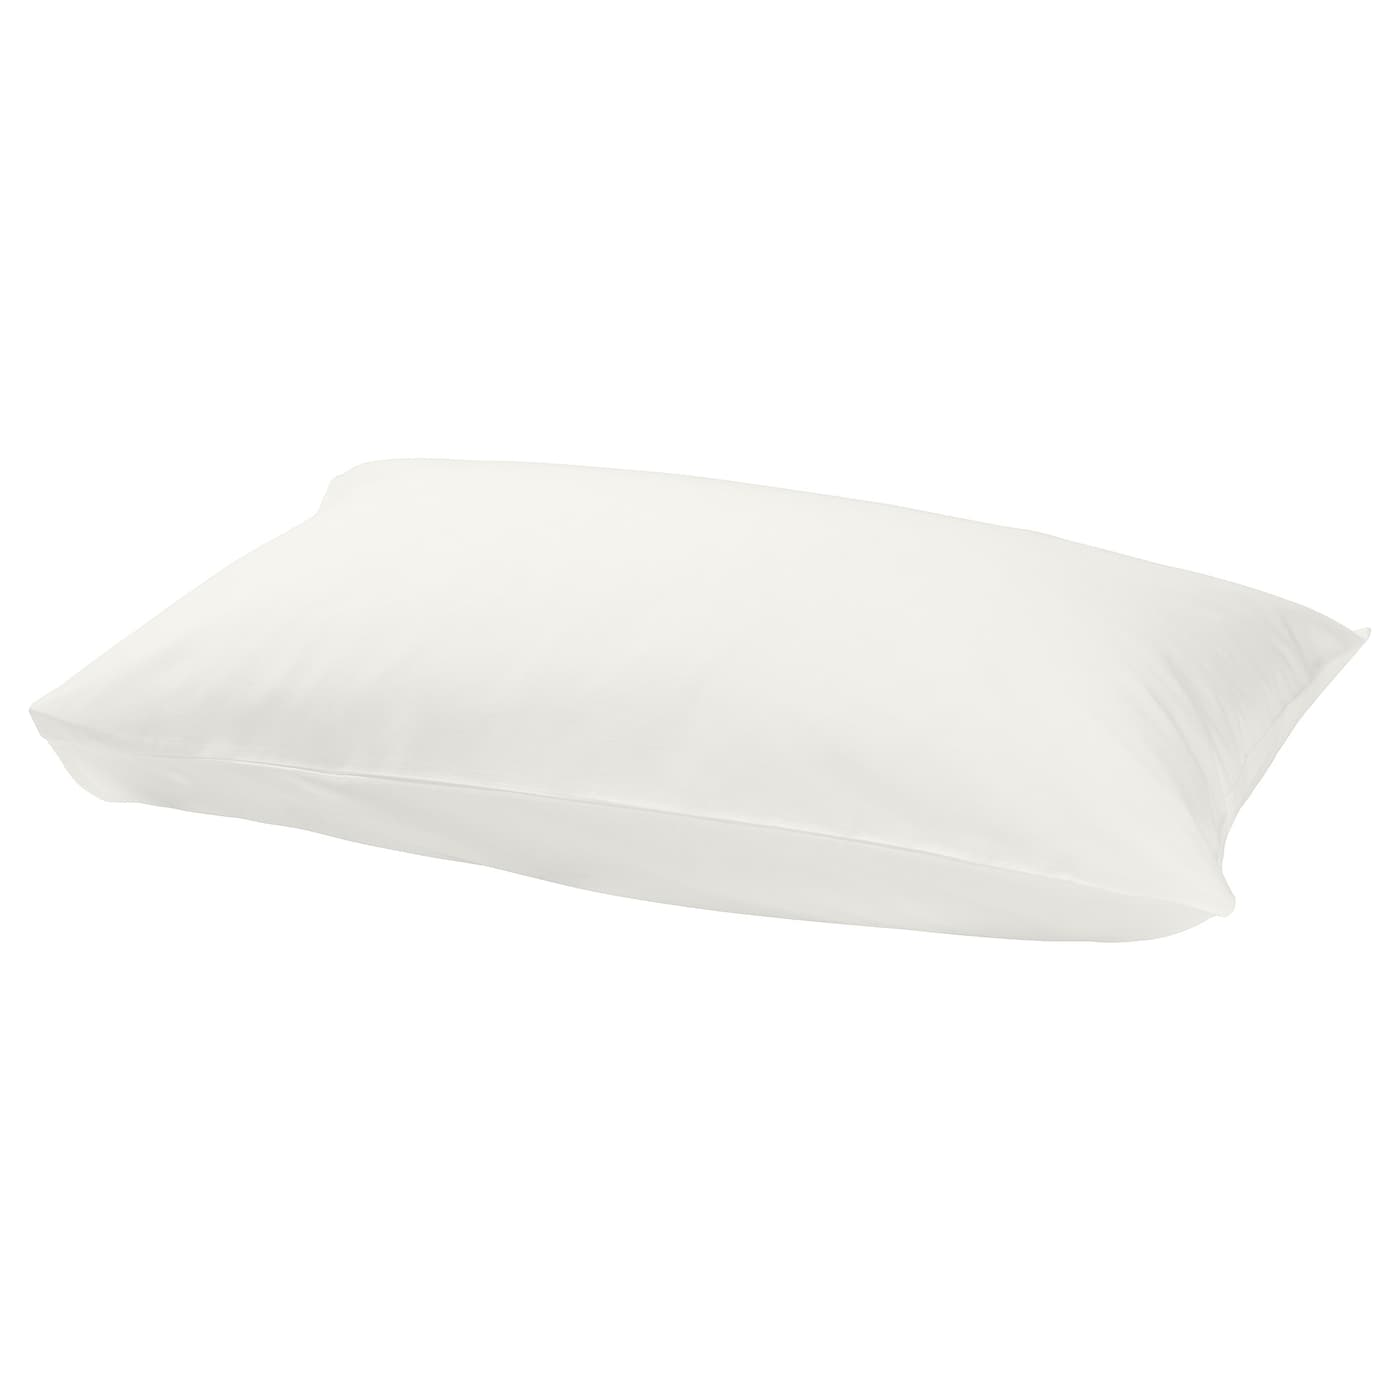 IKEA FÄRGMÅRA pillowcase Made in 100% cotton ‒ a natural and durable material.